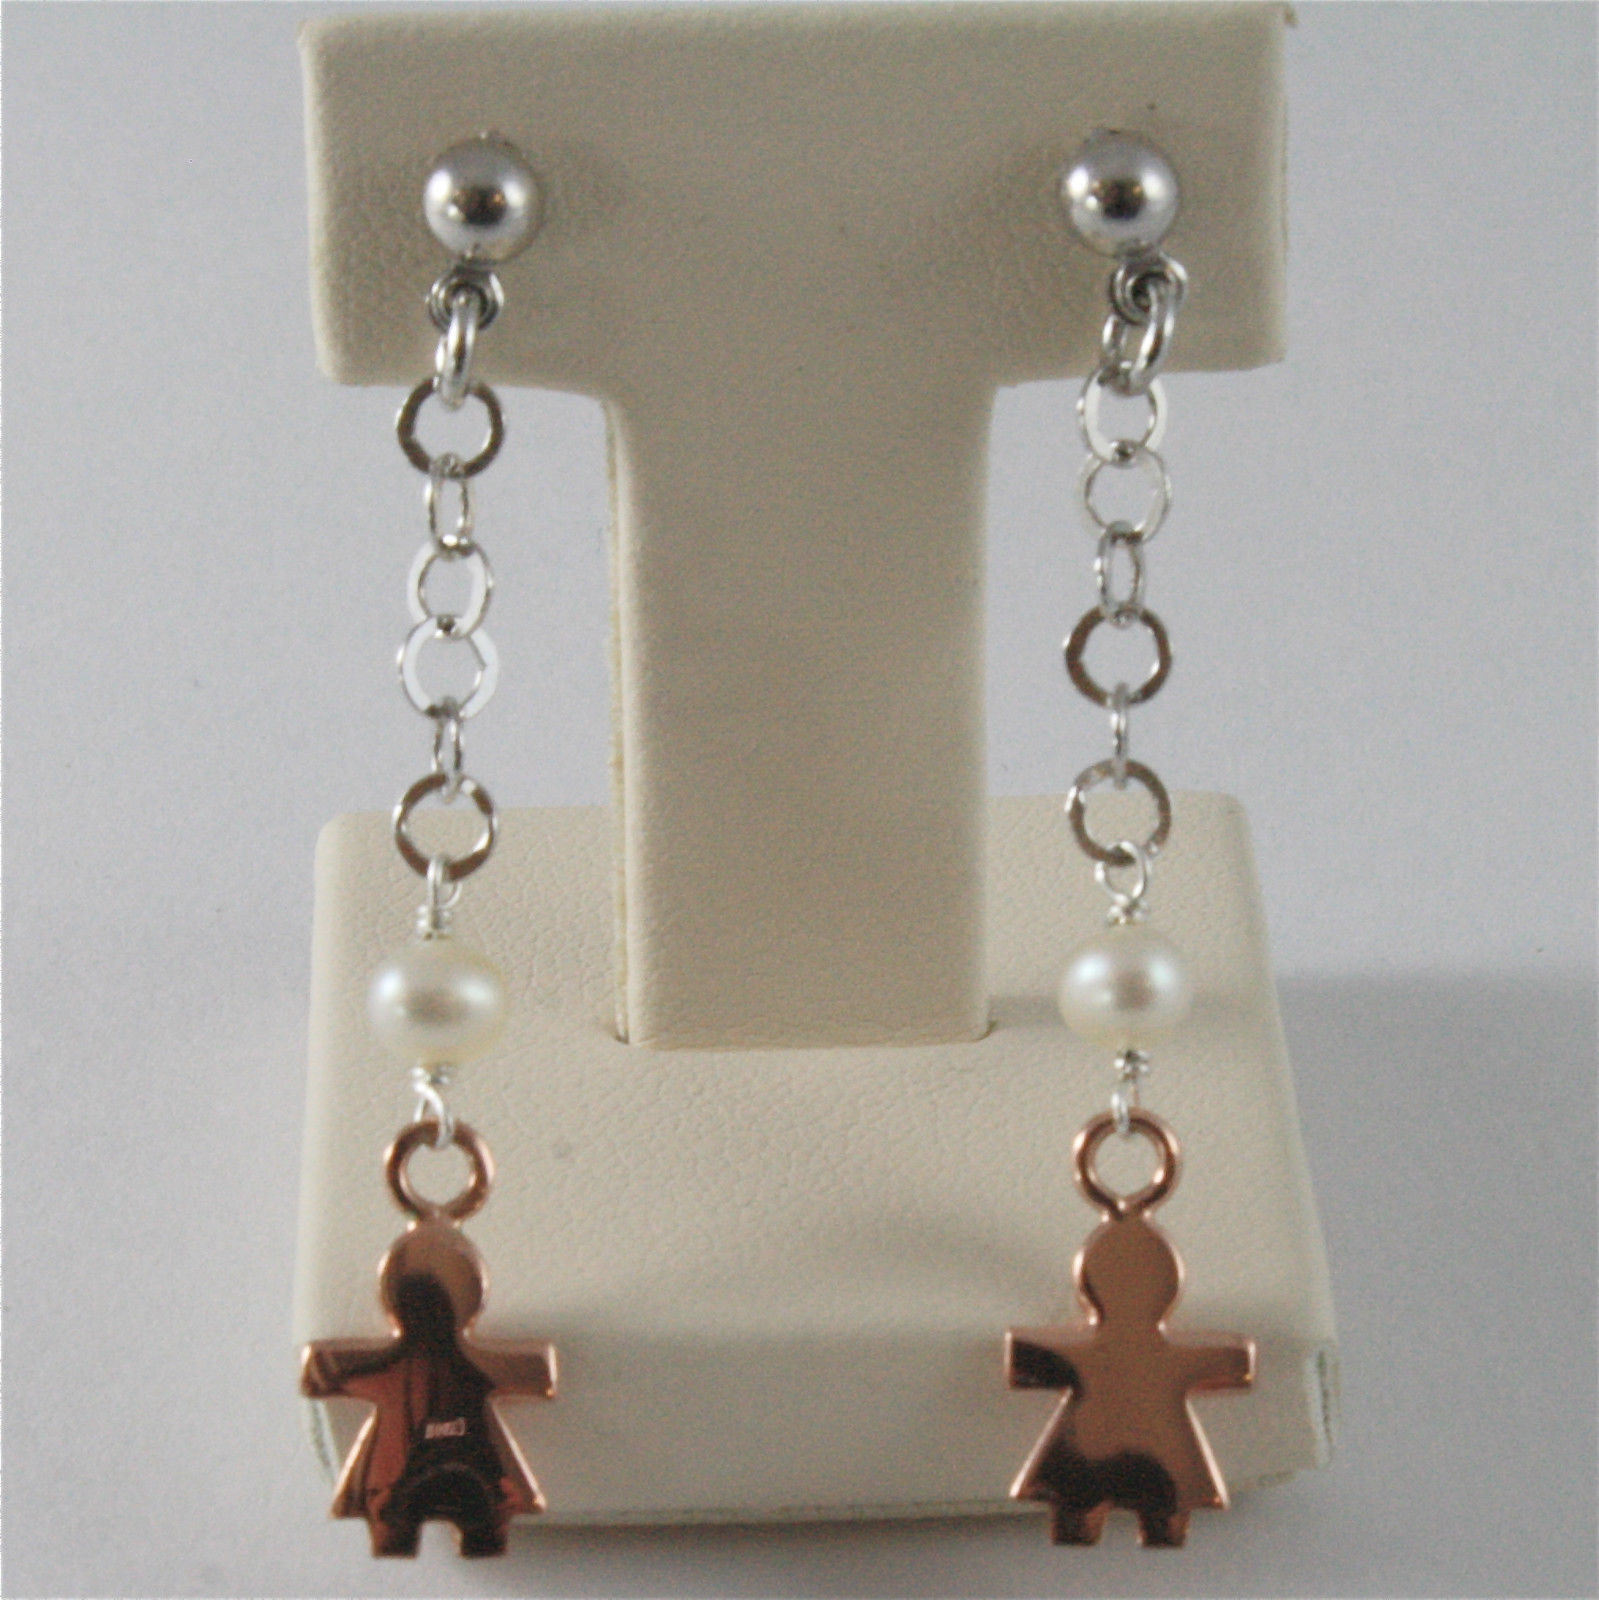 925 RHODIUM SILVER EARRINGS WITH 4 MM FW PEARLS AND BABY GIRL PENDANTS 1.77 INCH